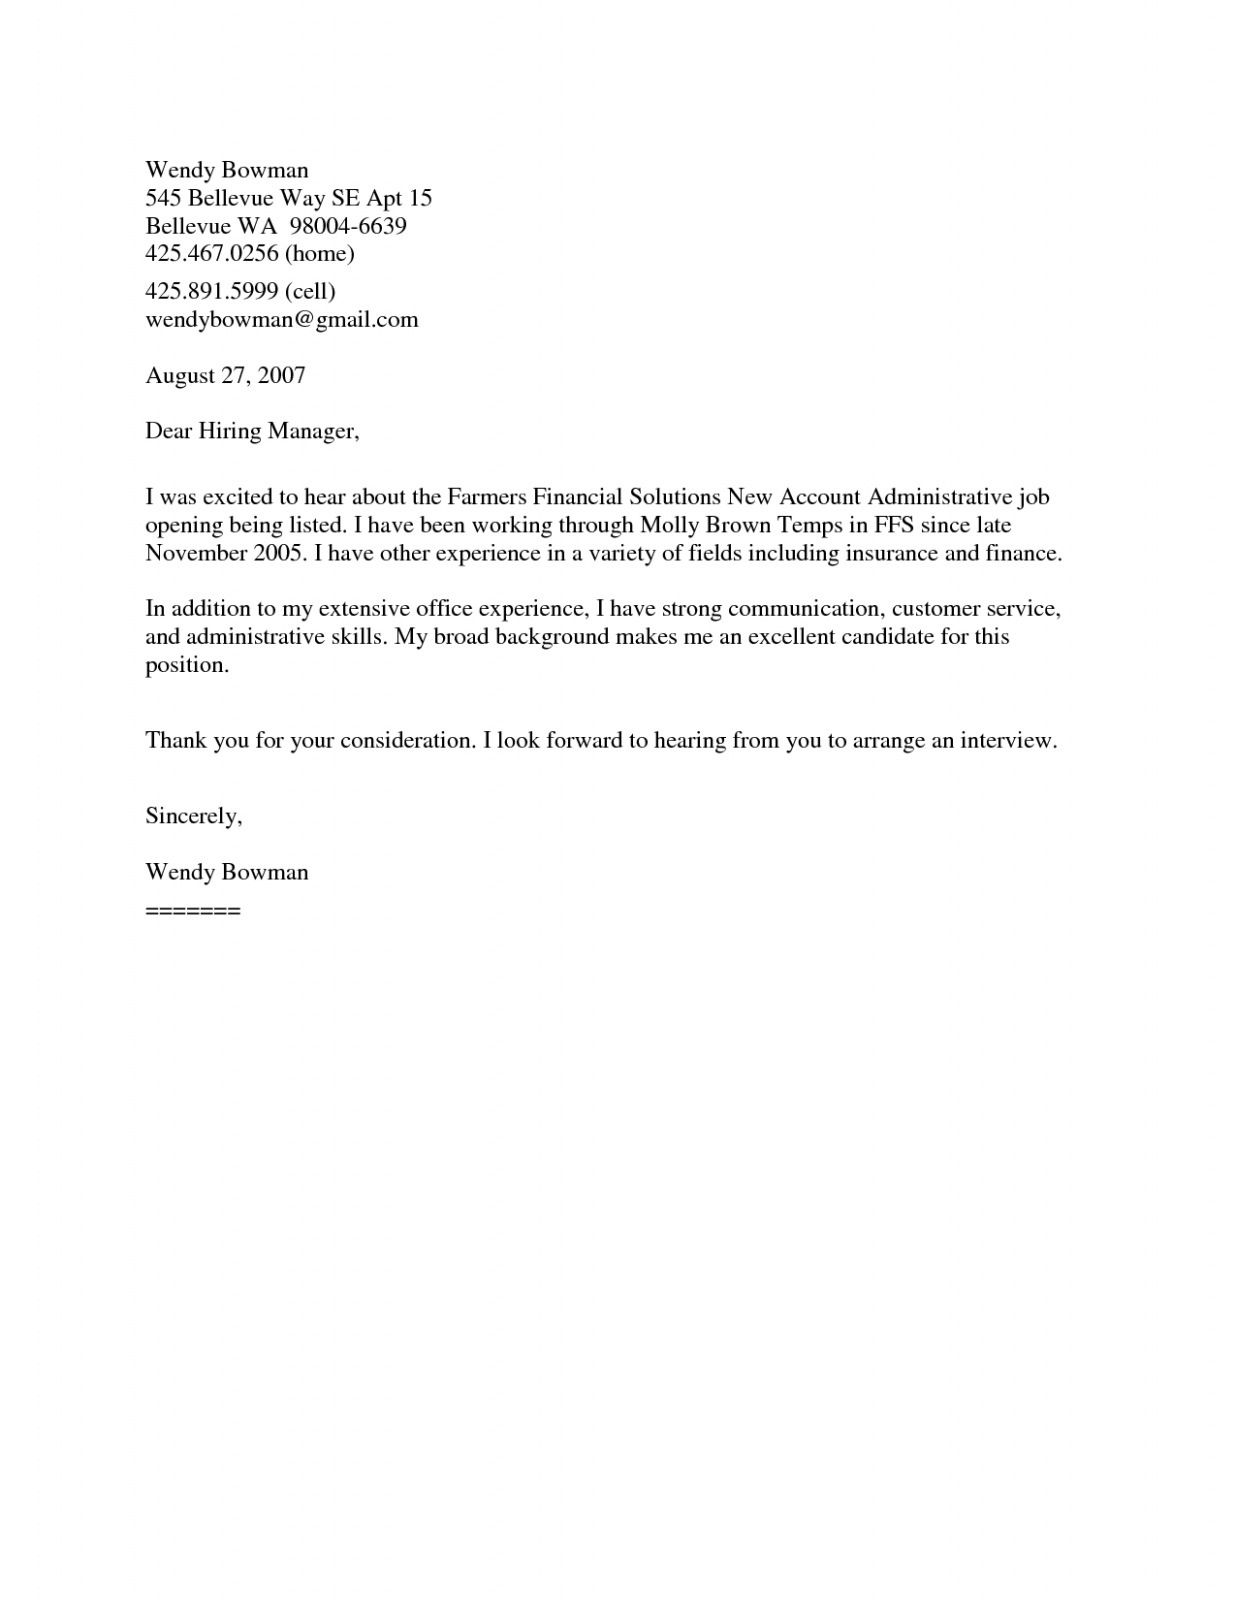 009 Frightening Generic Cover Letter For Resume Photo  General ExampleFull